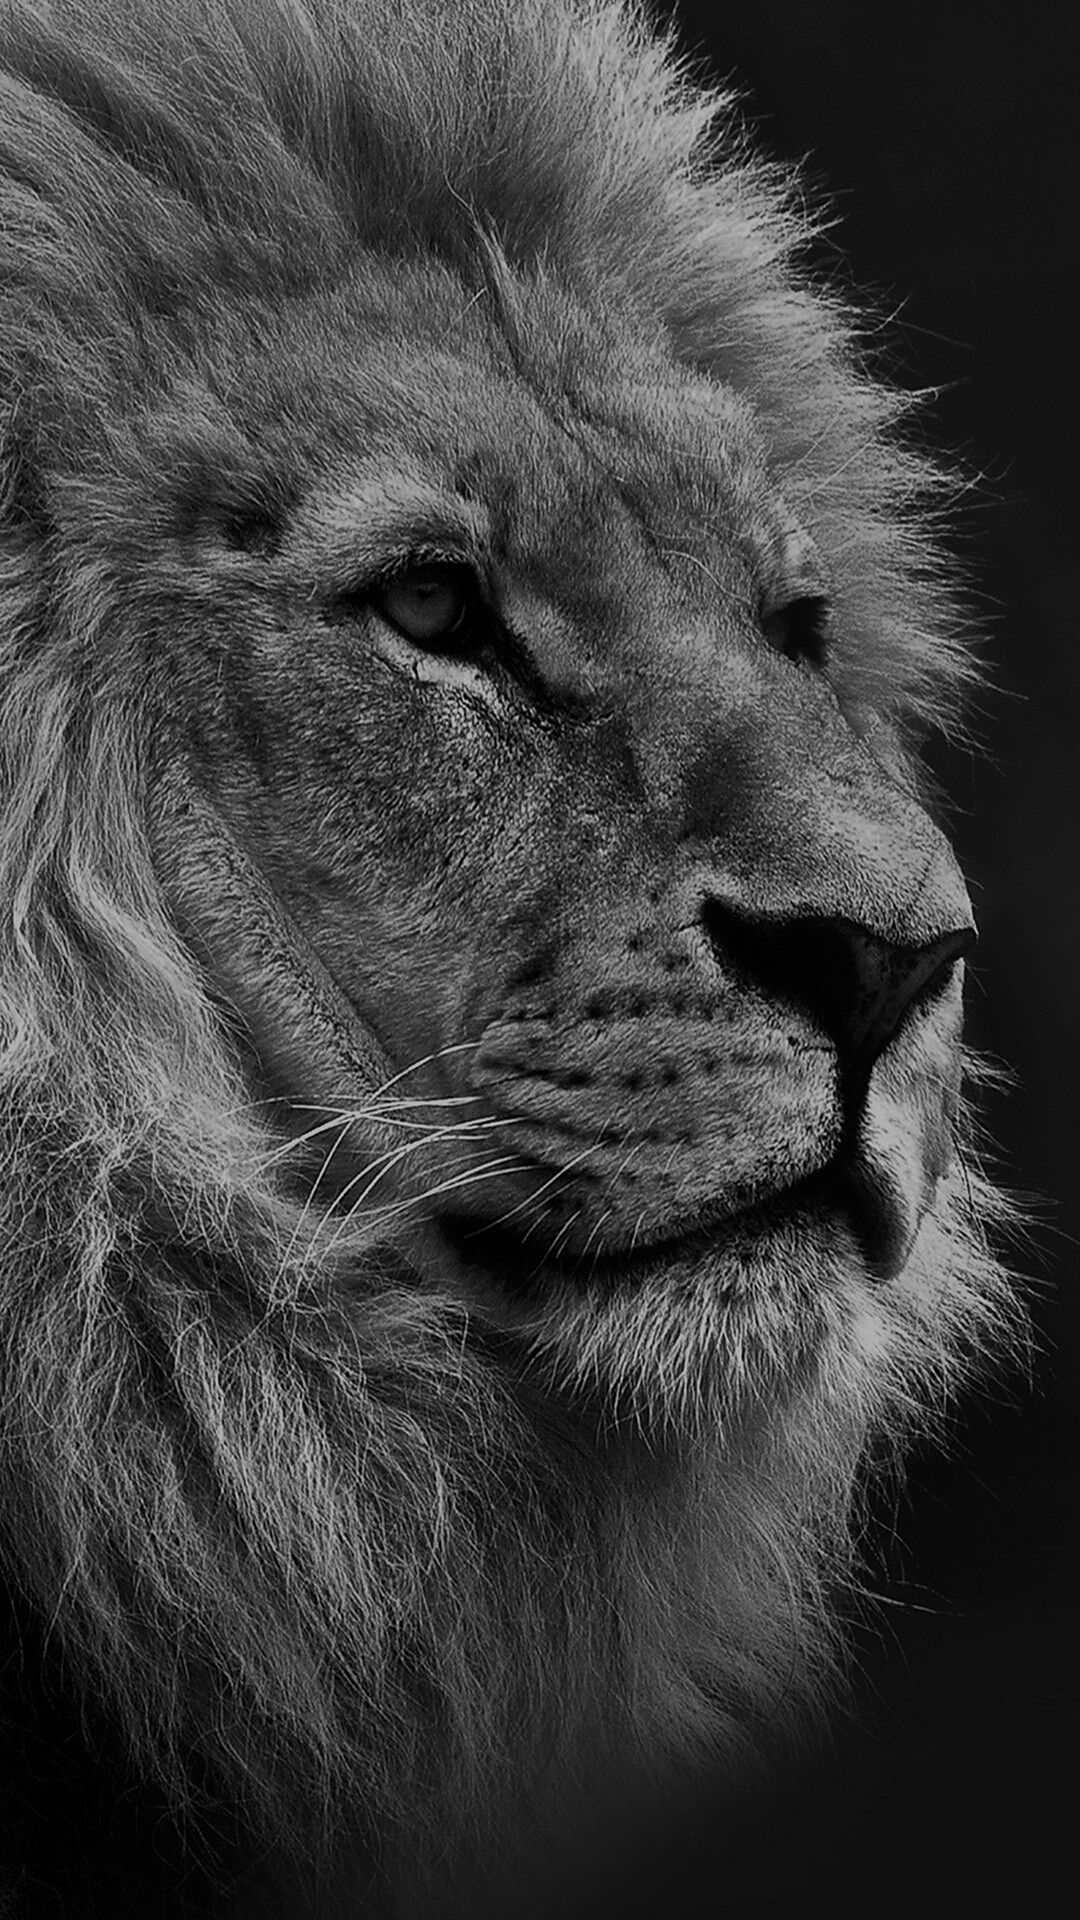 Pin by Mia💙 on Adidas Lion wallpaper, Android wallpaper